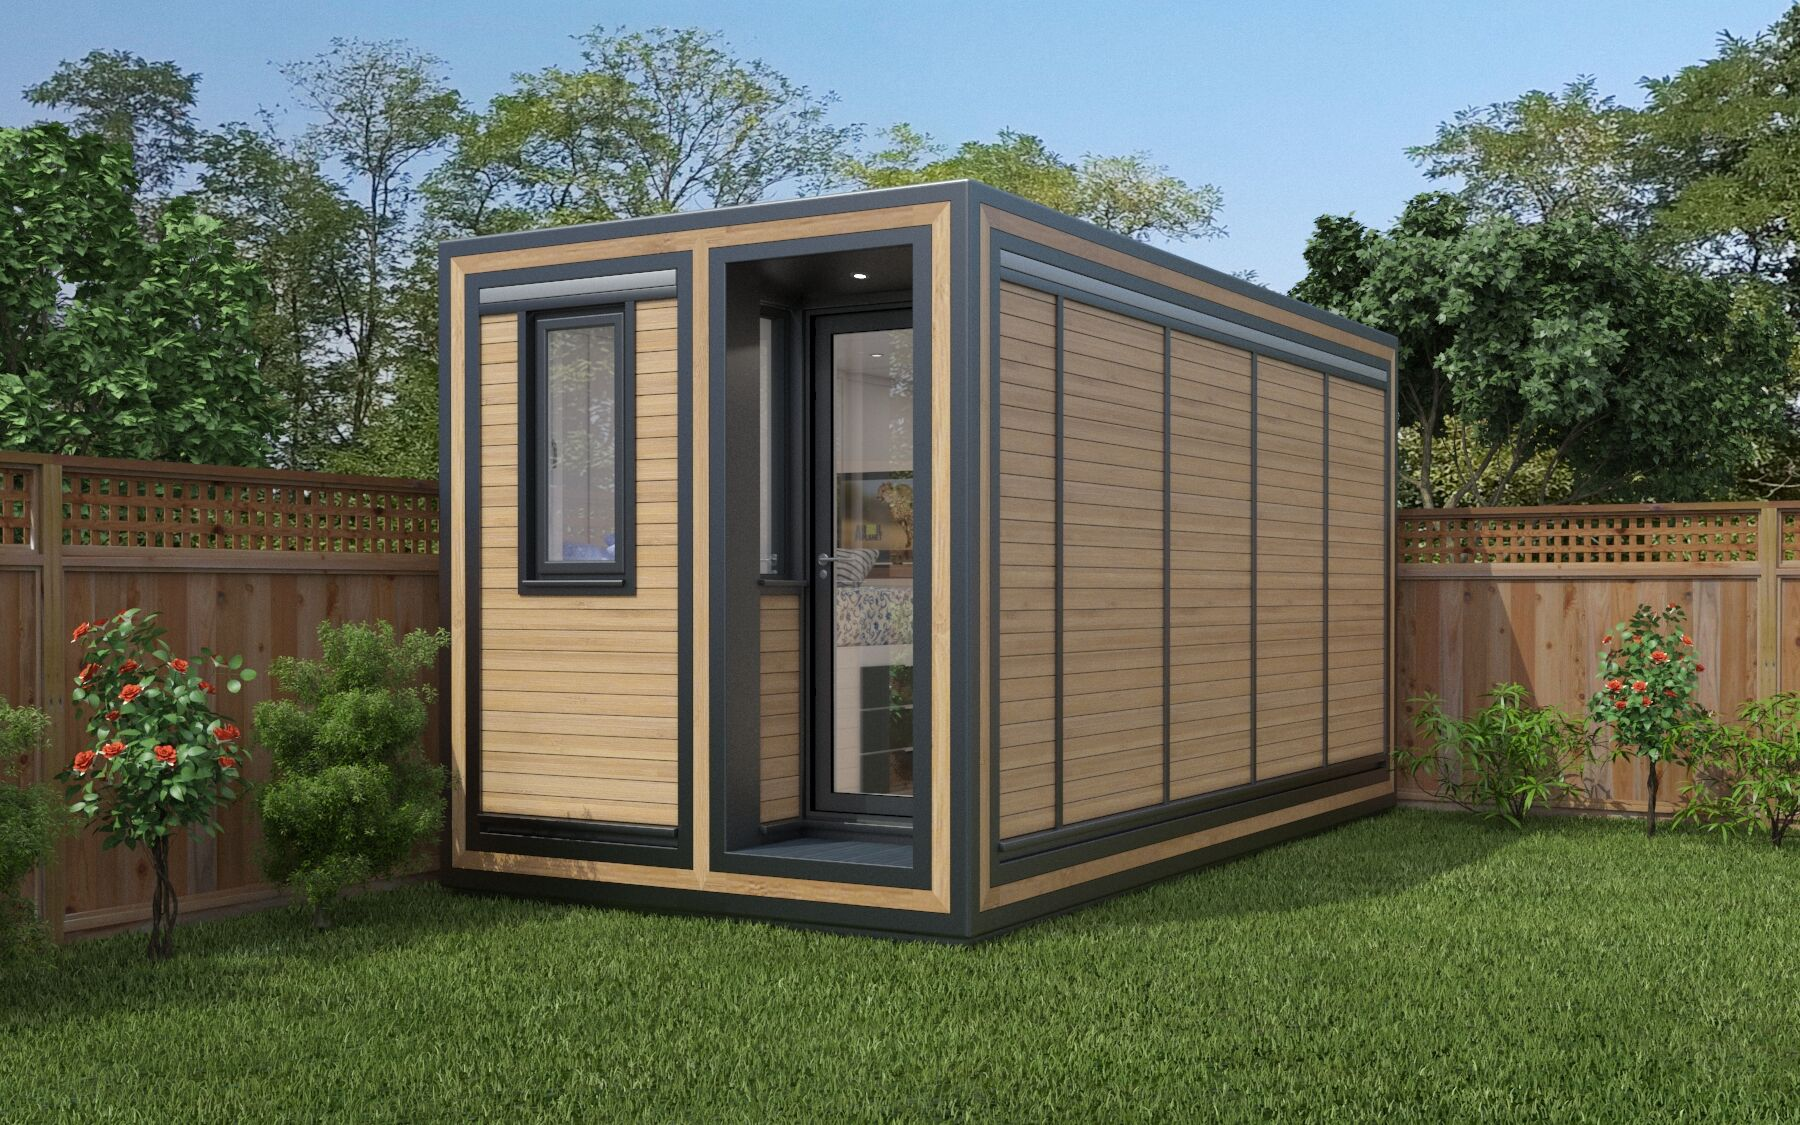 ZEDBOX 245  (2 x 4.5)  Internal Size: 2117 x 4817  External Size: 2587 x 5287  Bed Options: Single  Kitchen Options: Micro Kitchen  Wet Room Options: Yes  Portico: Yes  Price:  £22,000    Optional Extras    Request Zedbox Catalogue